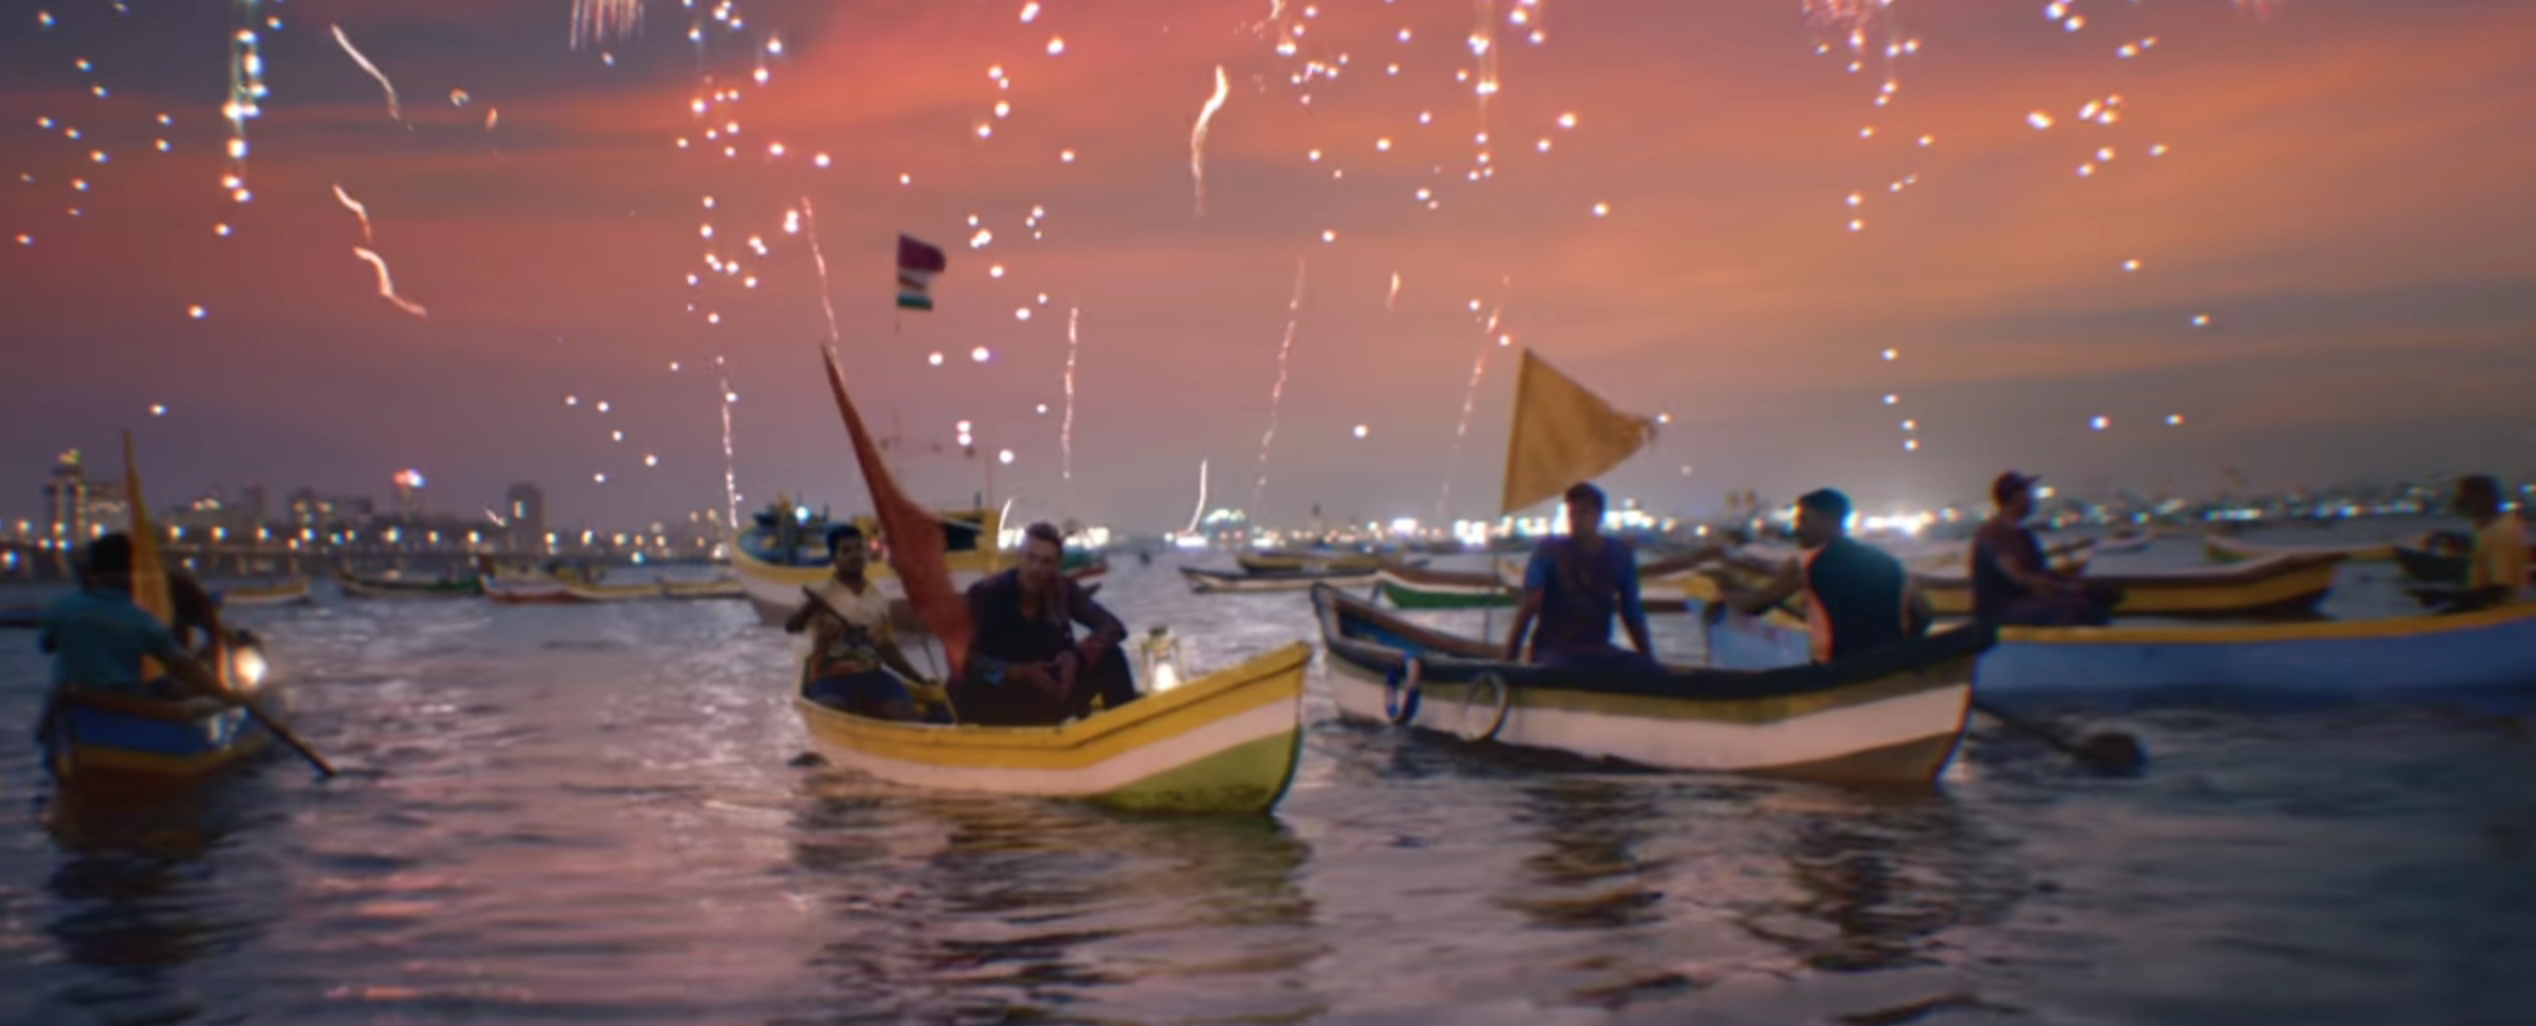 A shot from the music video for 'Hymn for the Weekend', Coldplay's single out January 2016. Source: YouTube